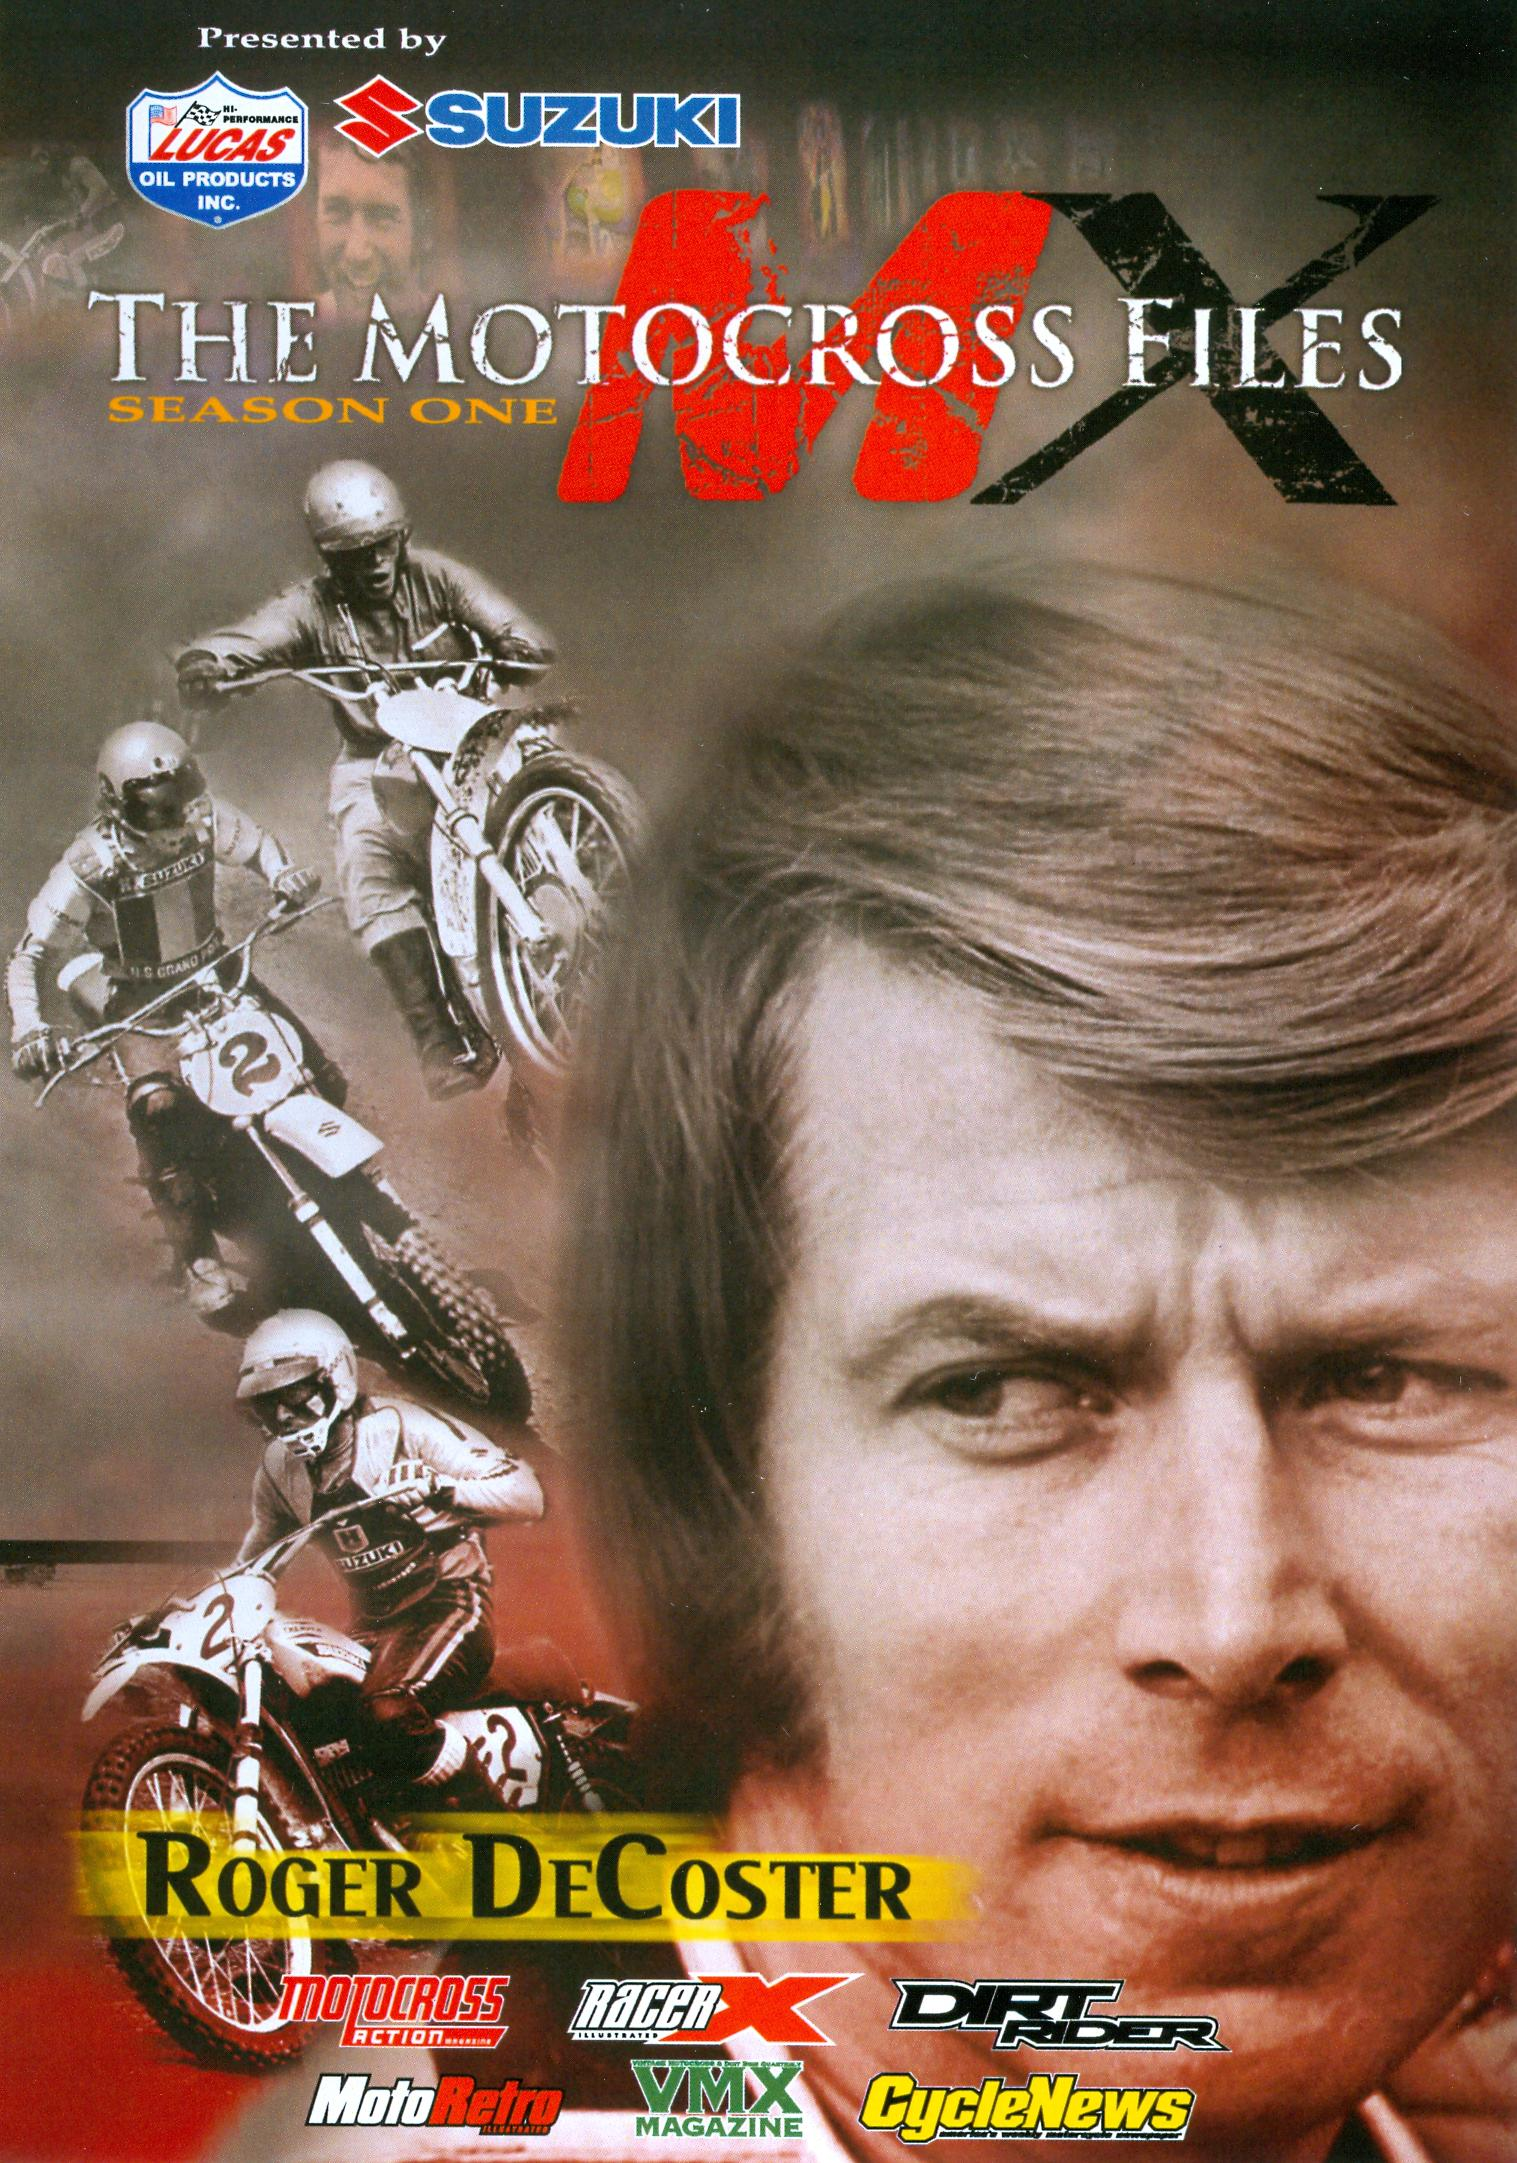 The Motocross Files: Roger DeCoster